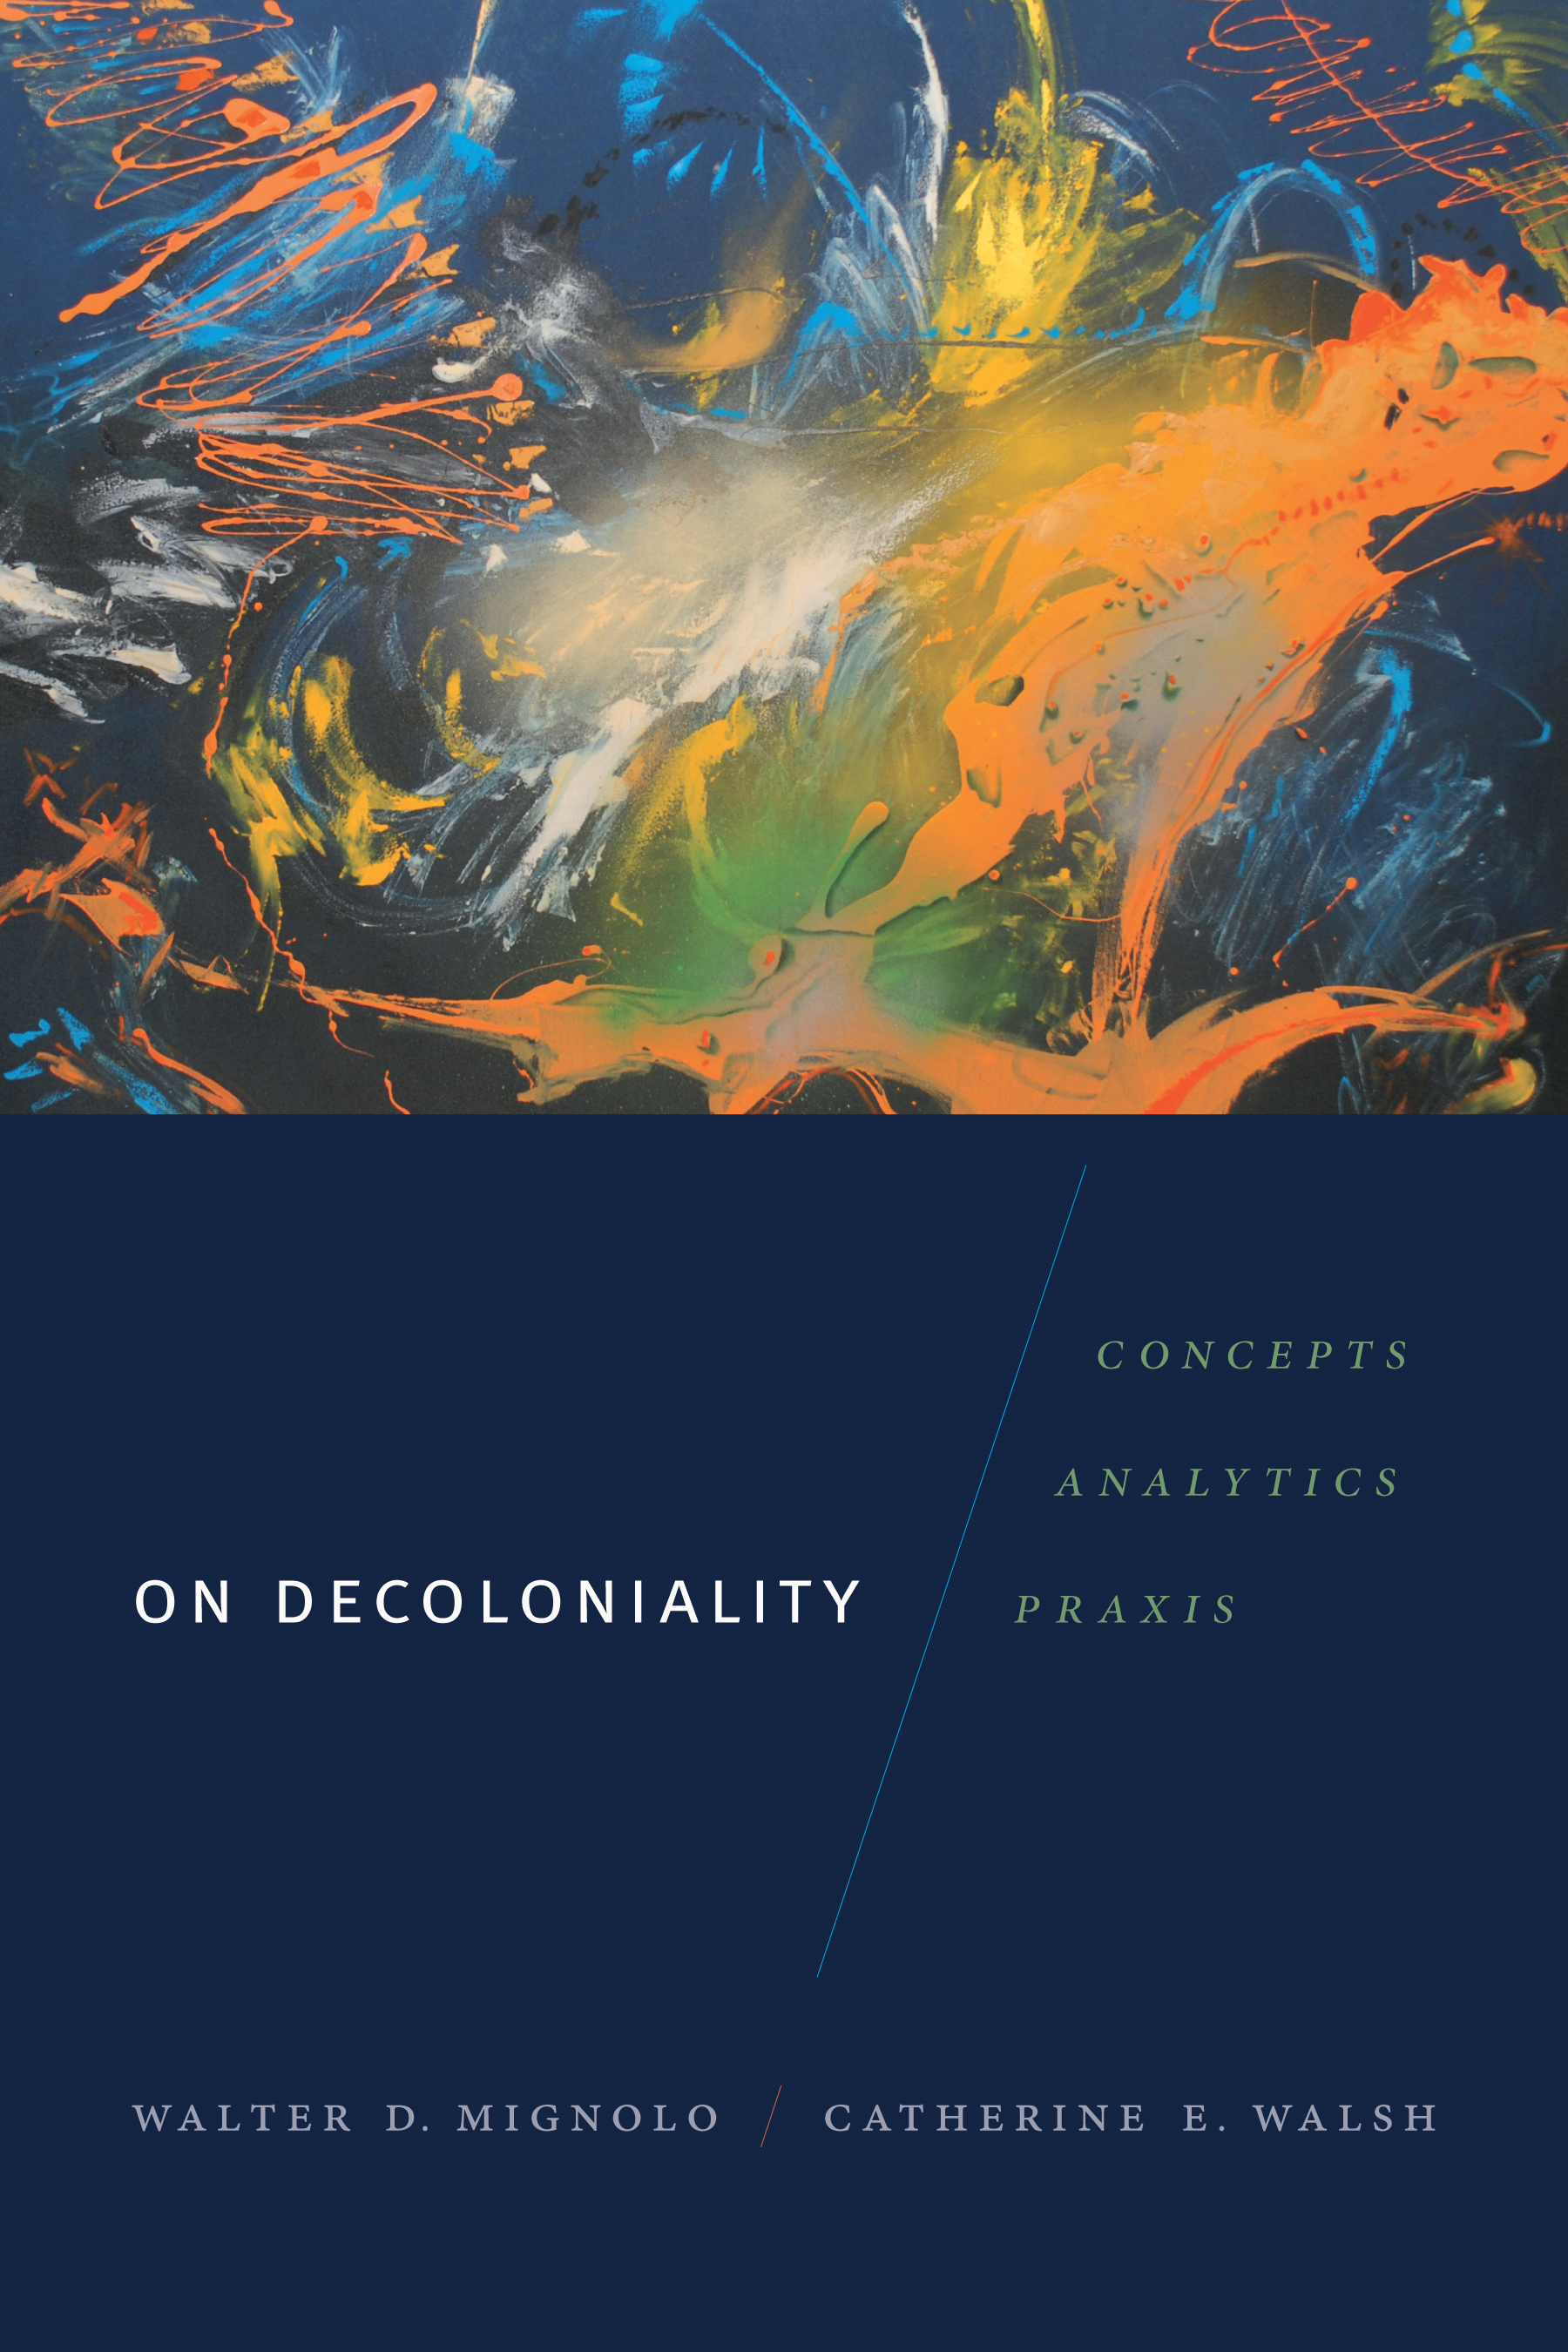 On Decoloniality Concepts, Analytics, Praxis